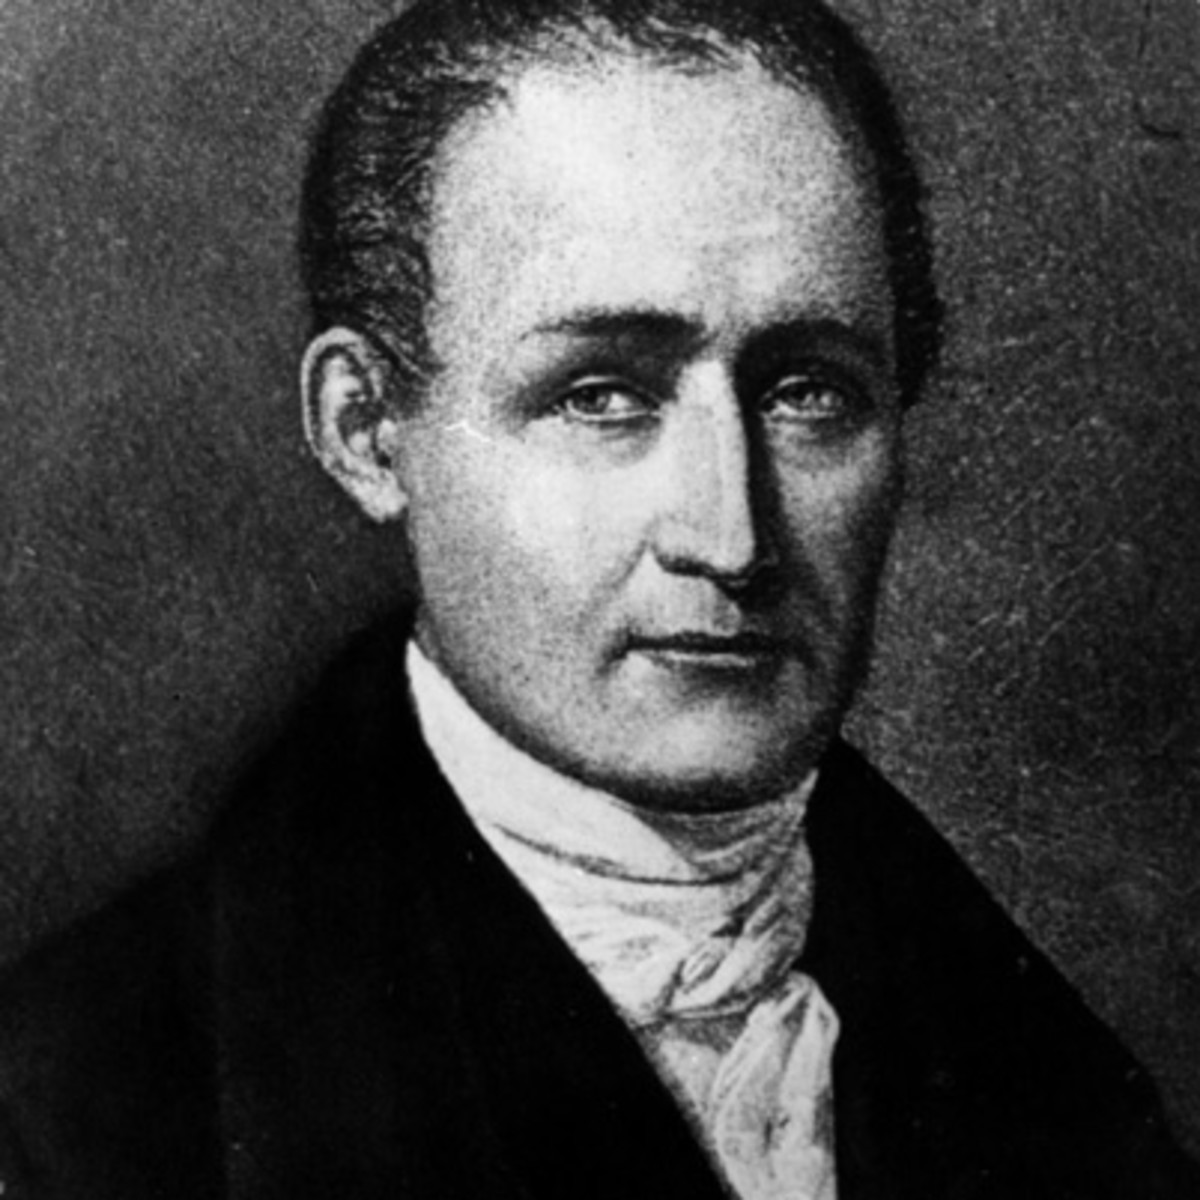 Nicéphore Niépce was the first inventor to make a permanent photographic image.